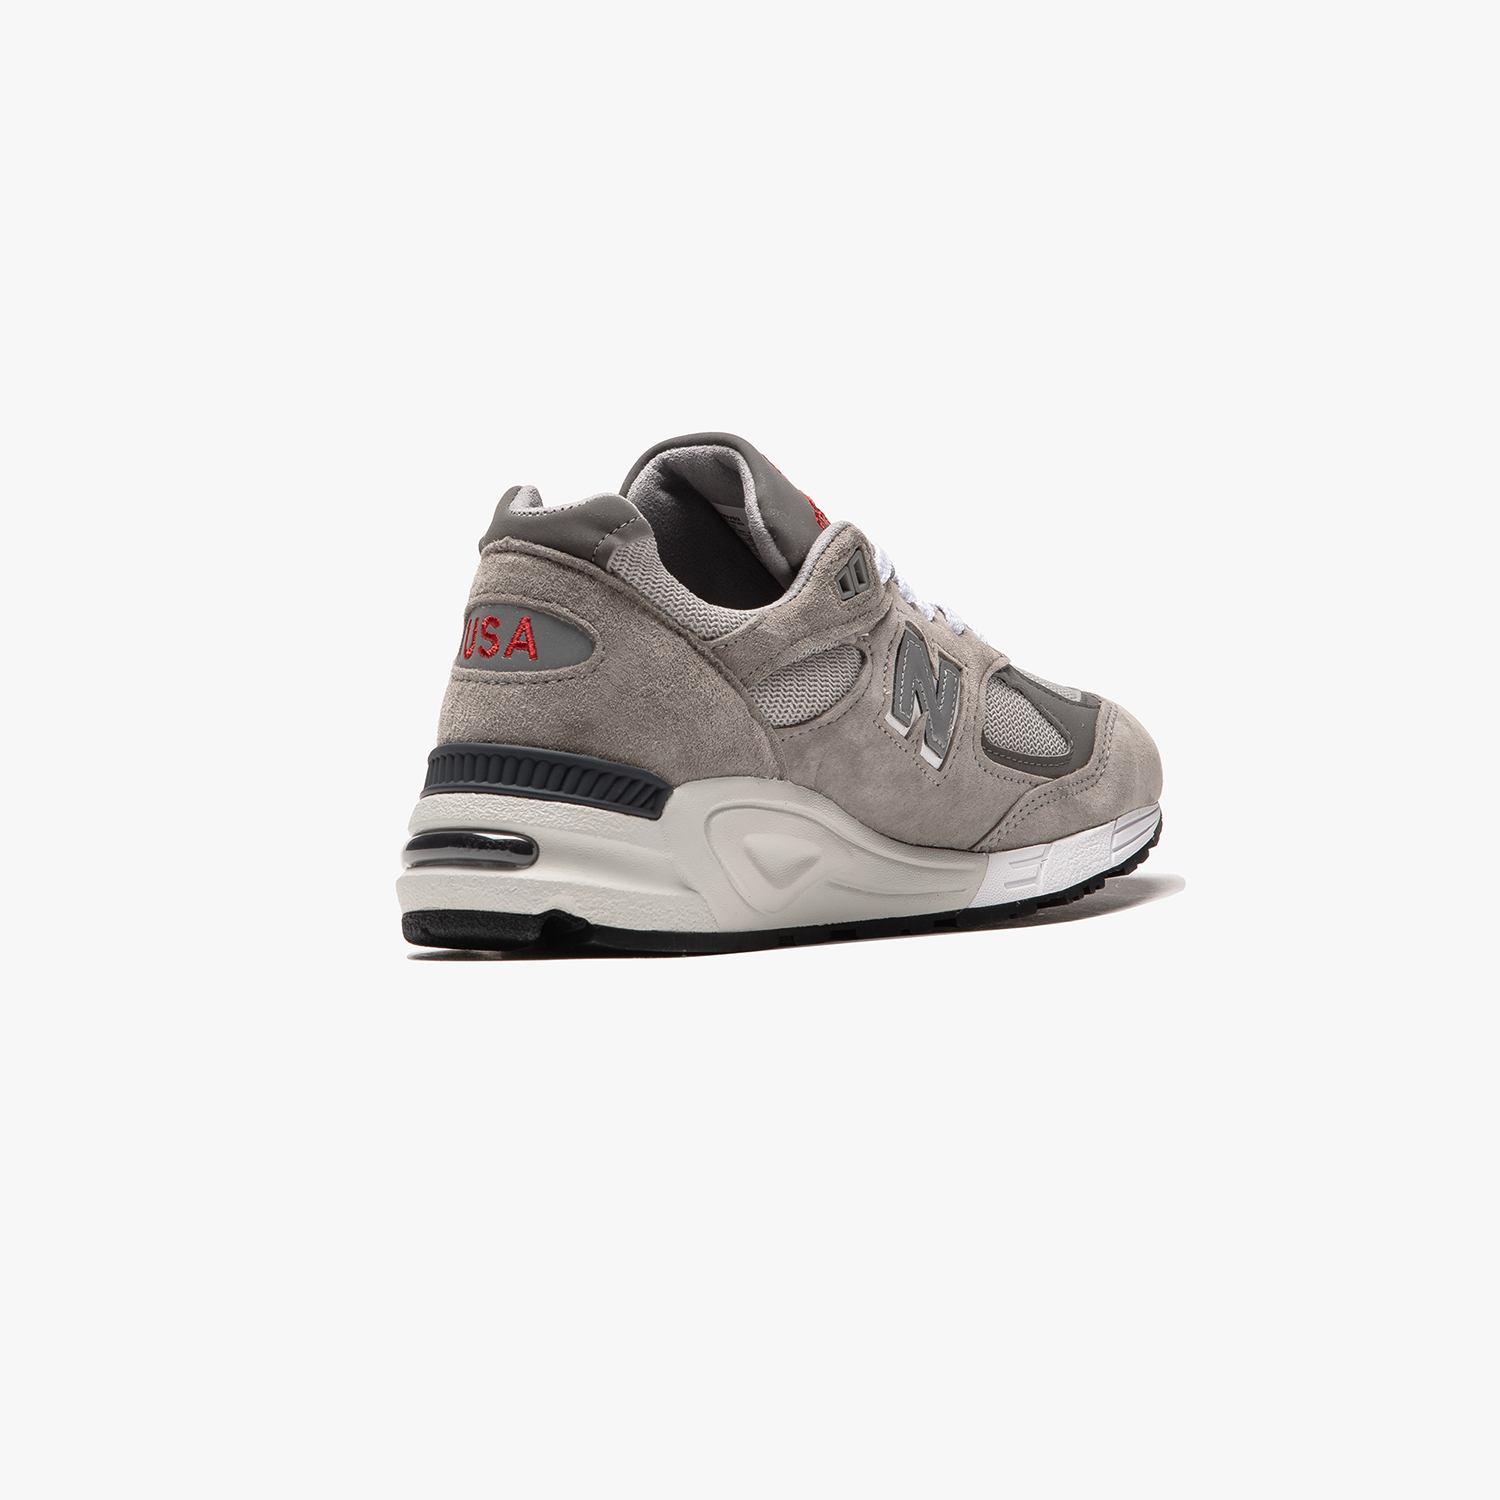 New Balance M990 Made in US